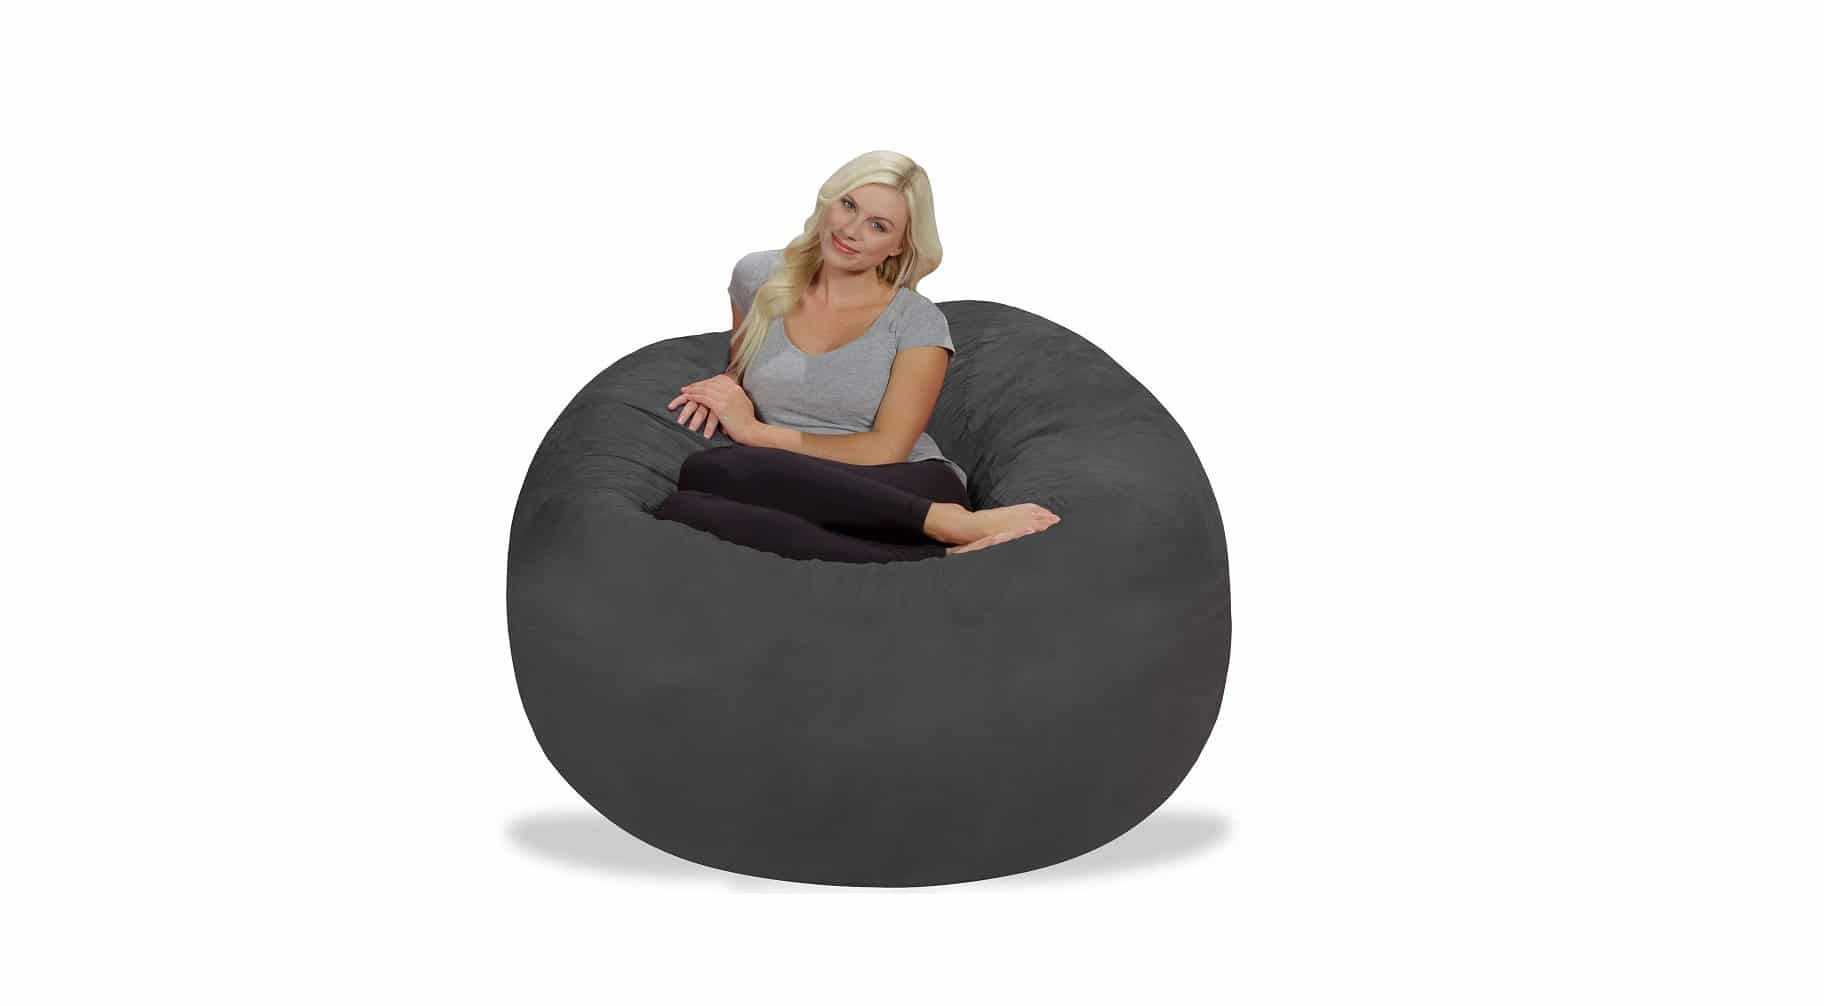 Chillsack More Than Your Typical Bean Bag Chair Review